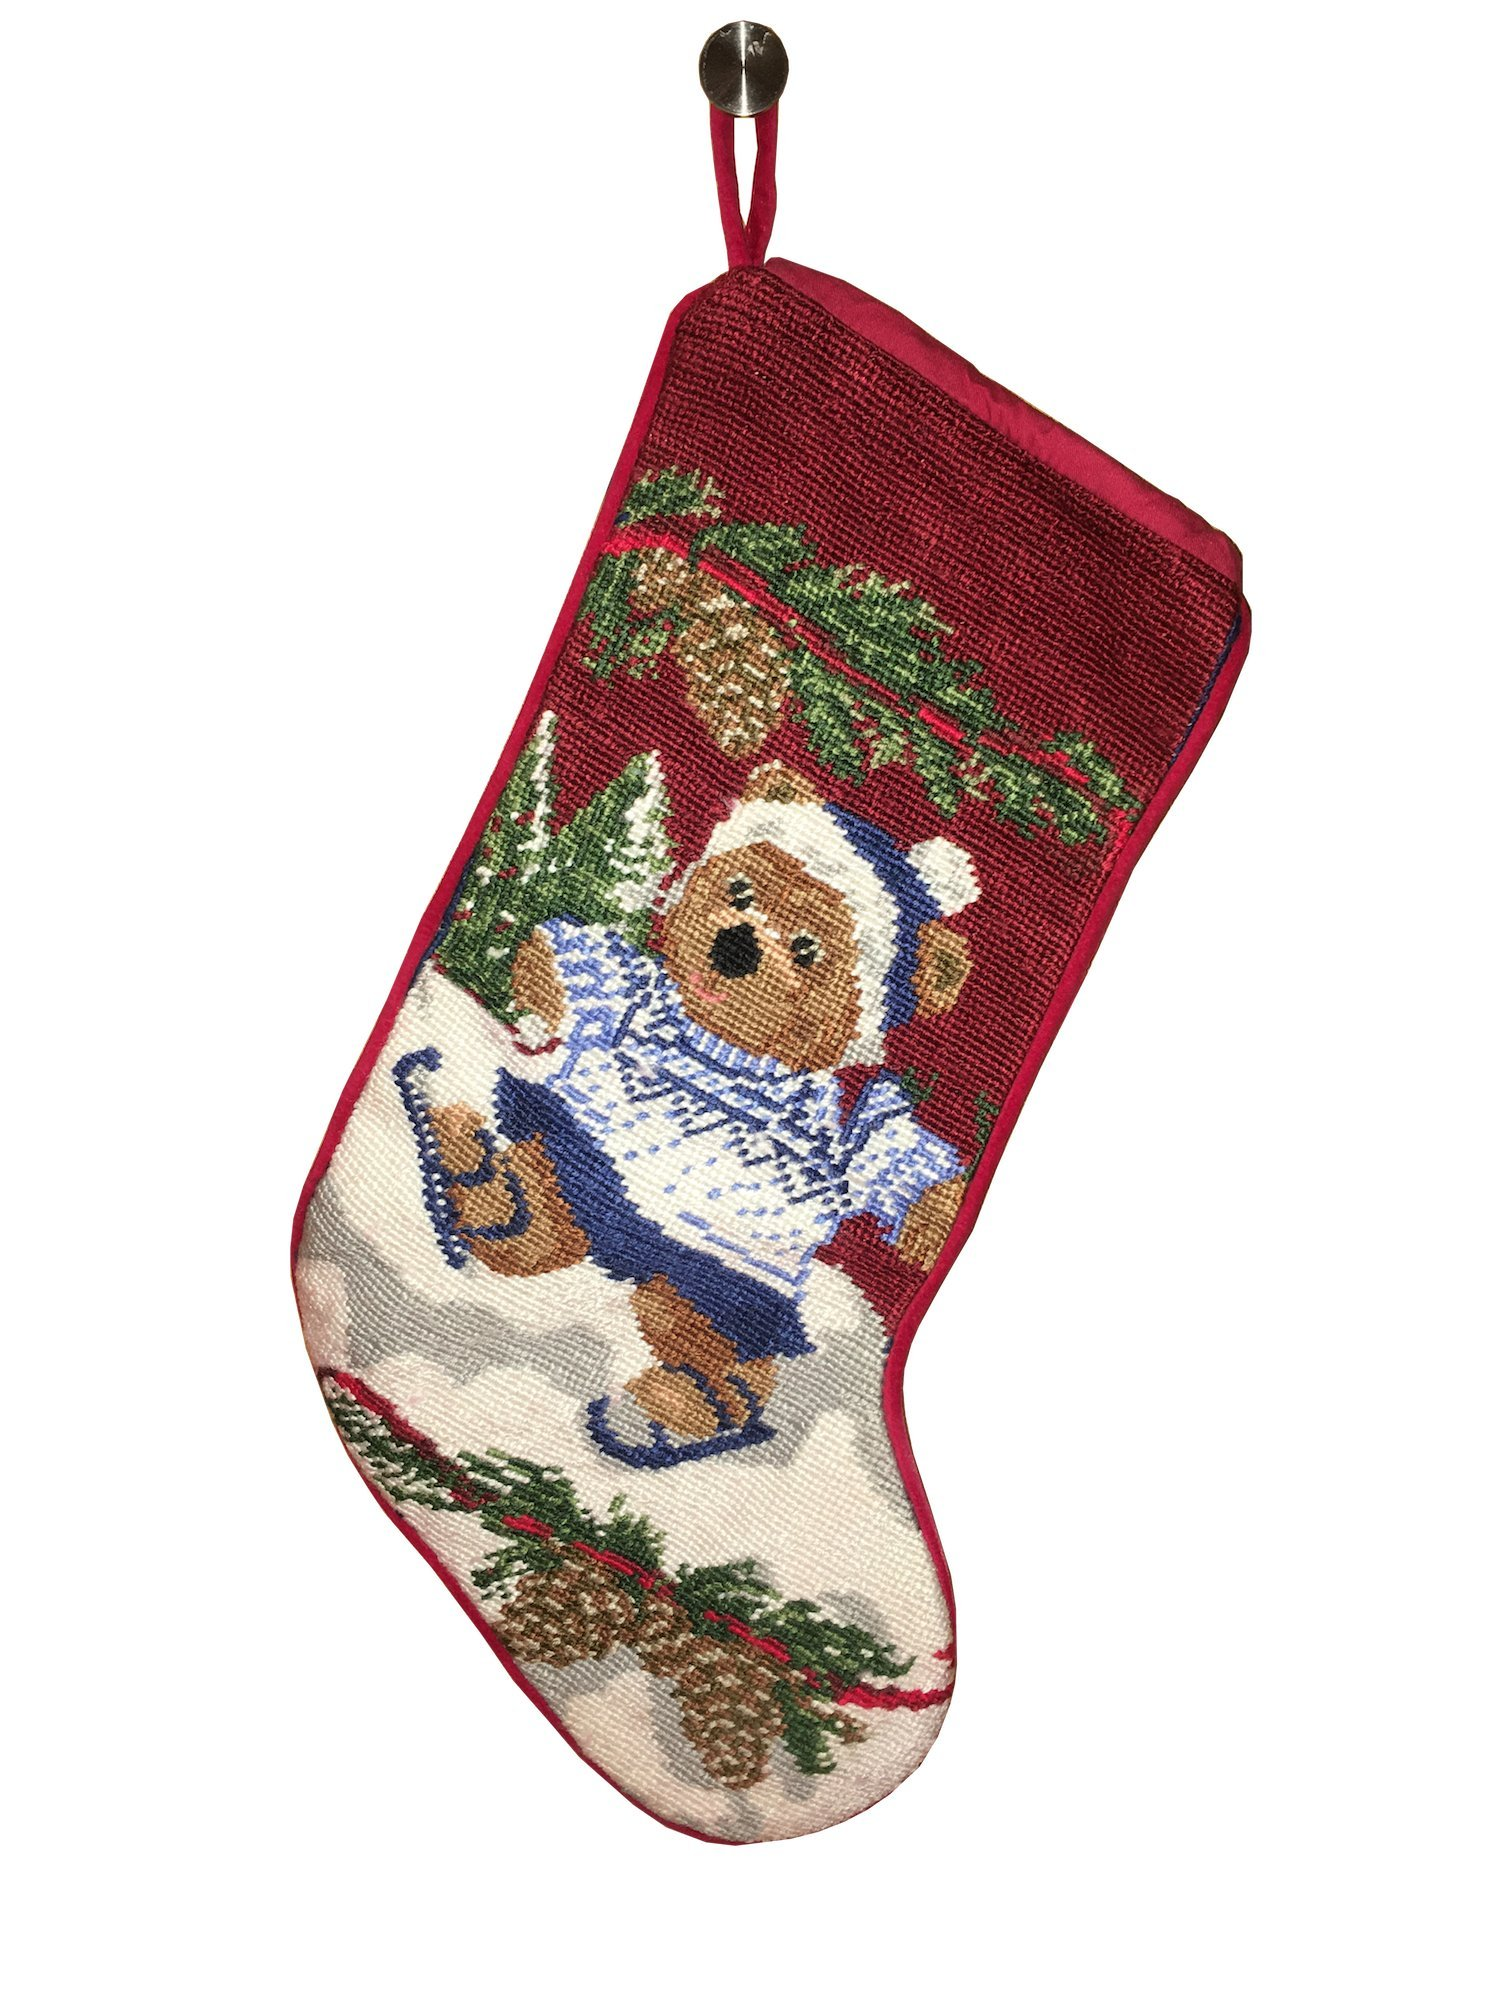 Christmas stockings with bear skating can be personalized separately, large christmas stocking holders for gift fillers and stuffers, great xmas stocking for kids and pets